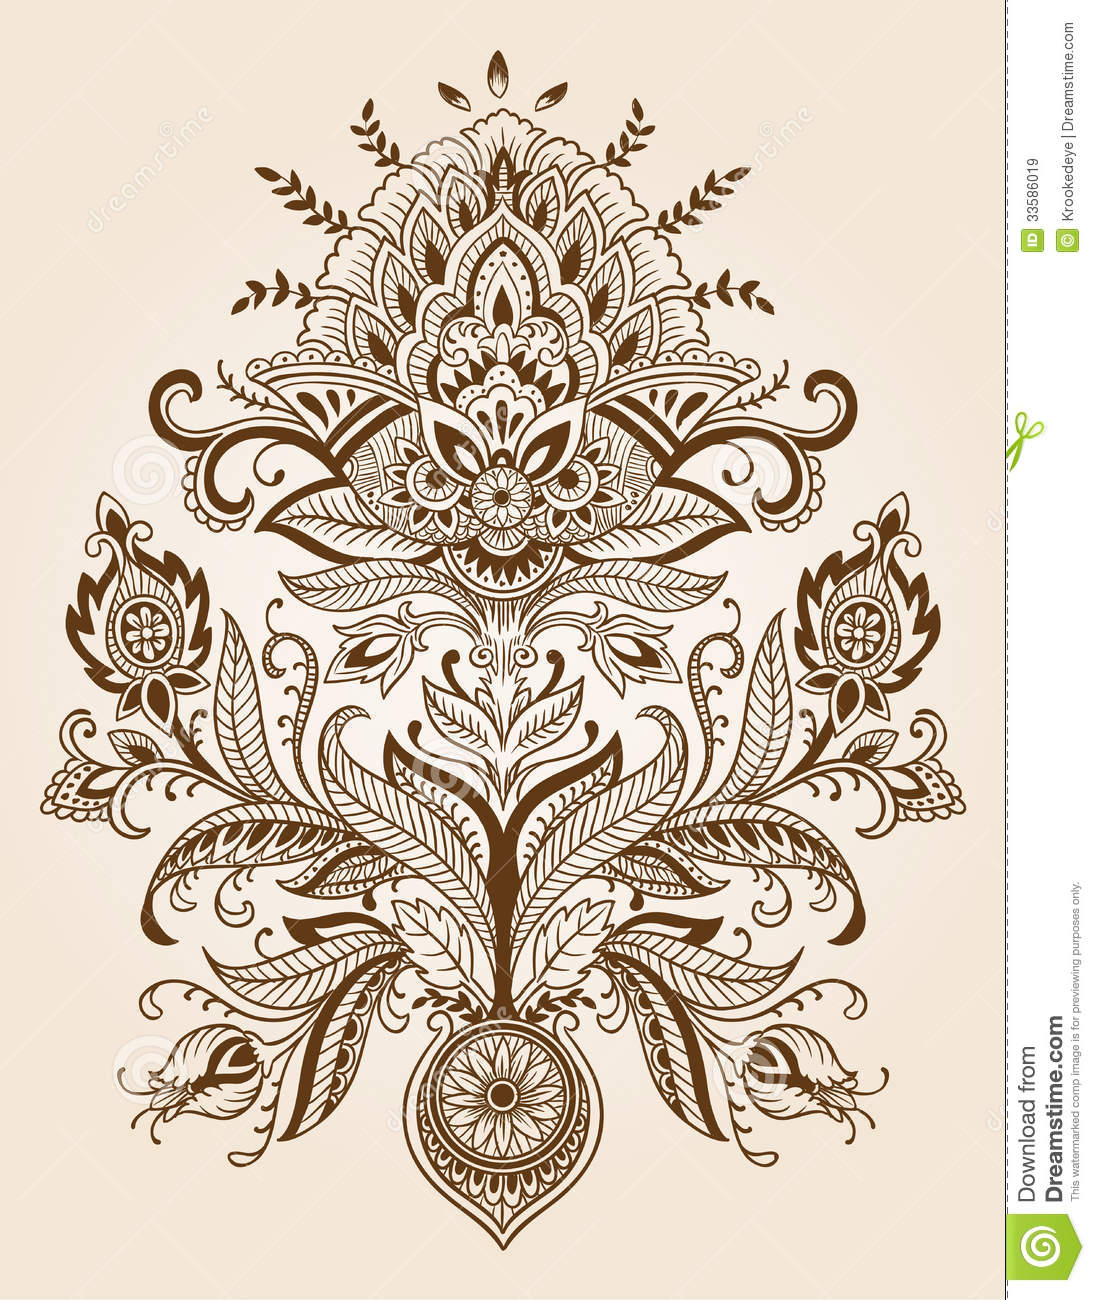 Henna Lace Paisley Flower Vector Stock Vector Illustration Of